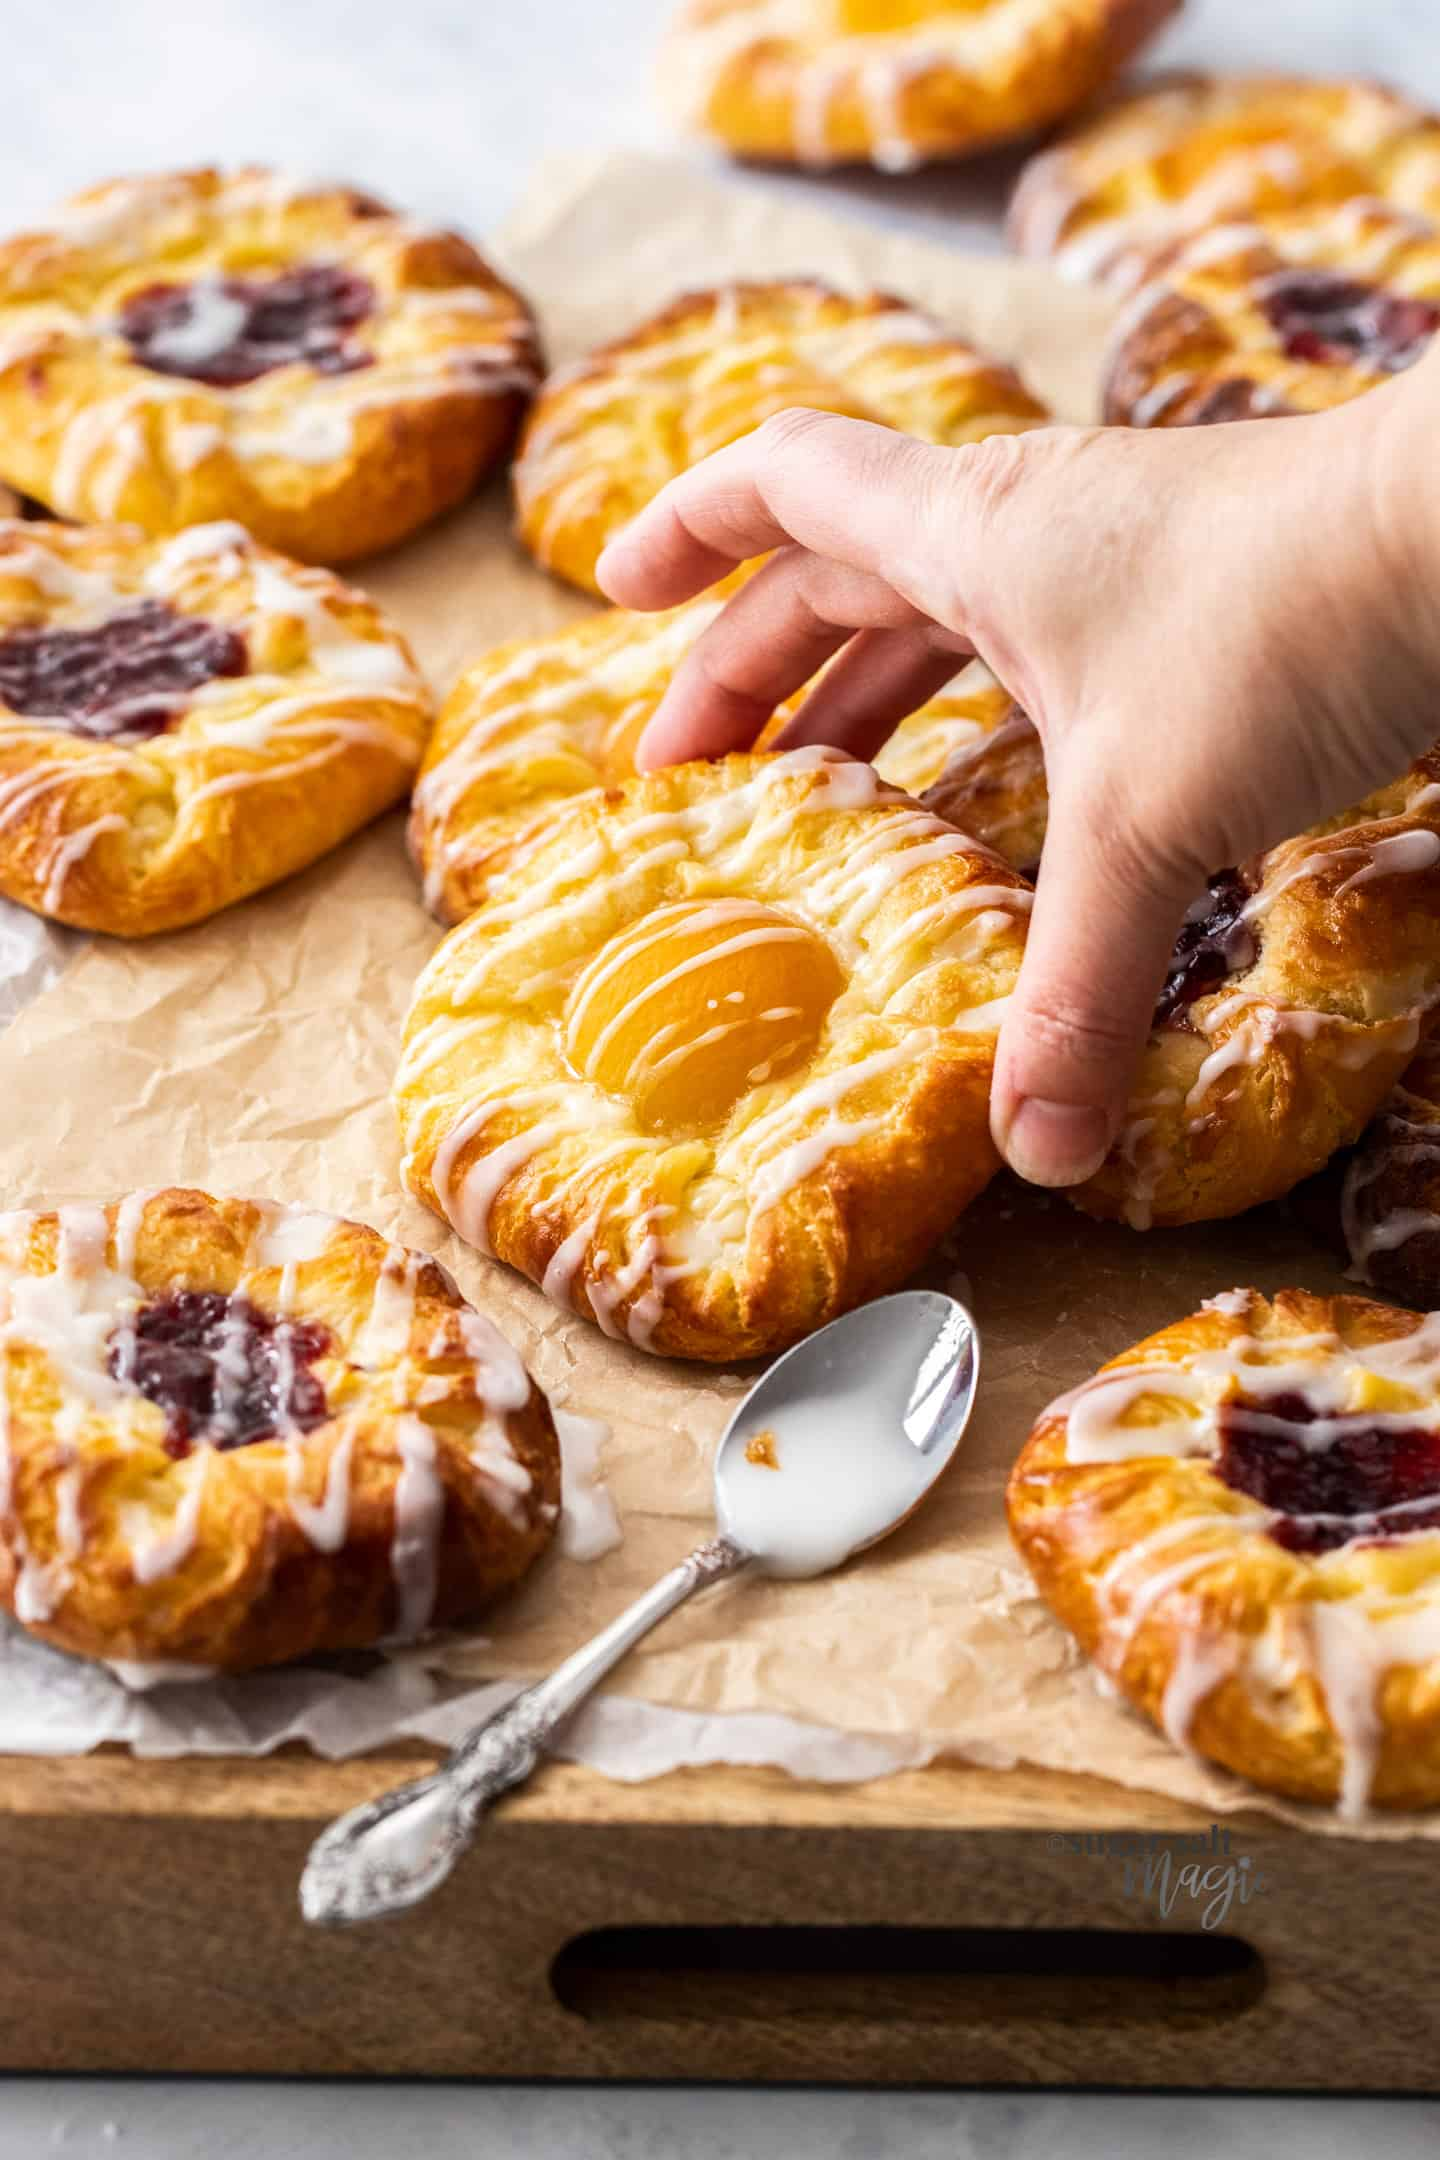 A hand reaching in to pick up an apricot danish from a wooden board.